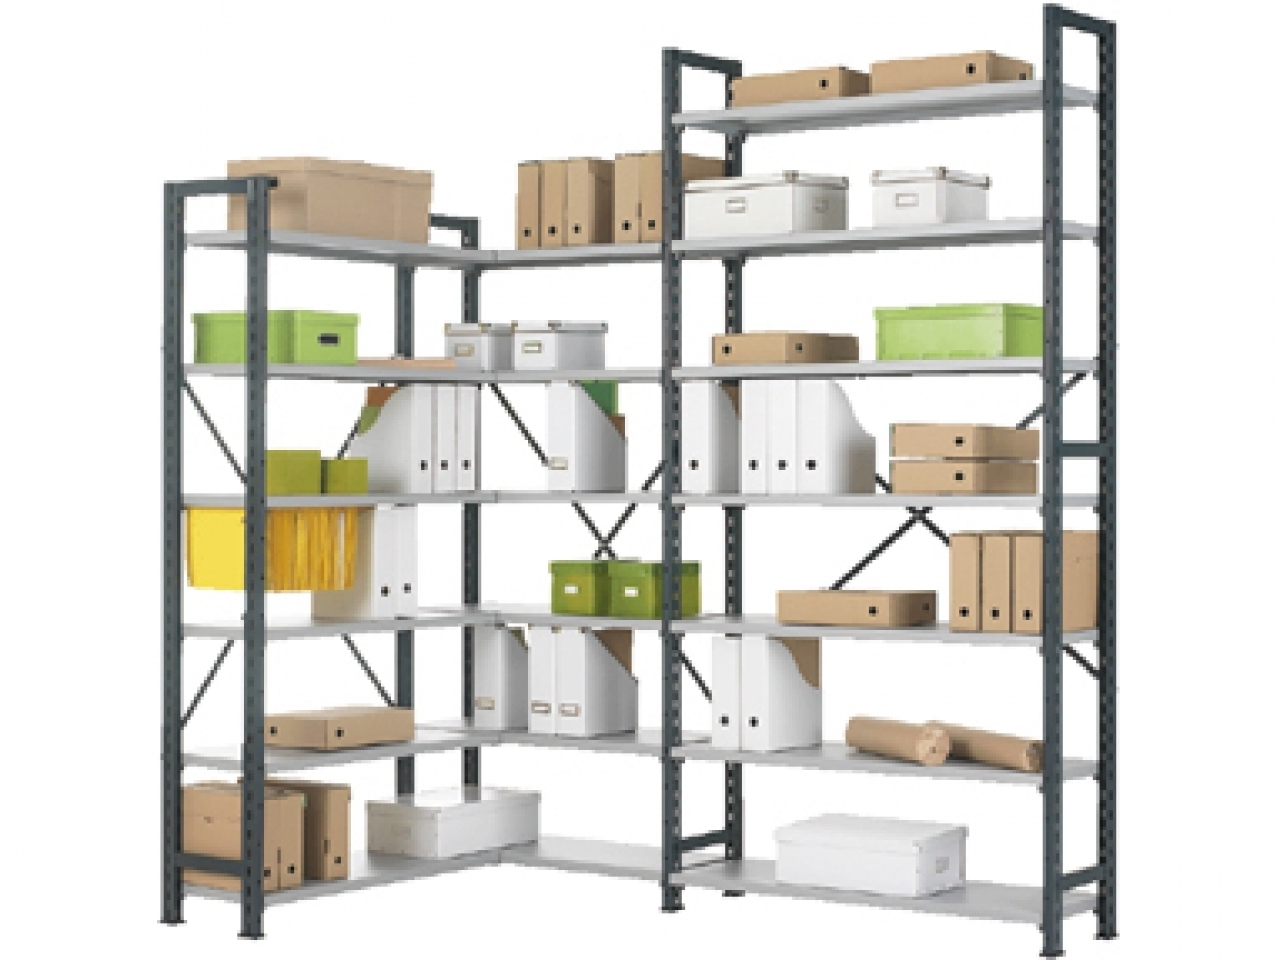 Most Popular Cheap Shelving Units Within Pleasurable Cheap Shelving Units Innovative Ideas Shelves (View 9 of 15)